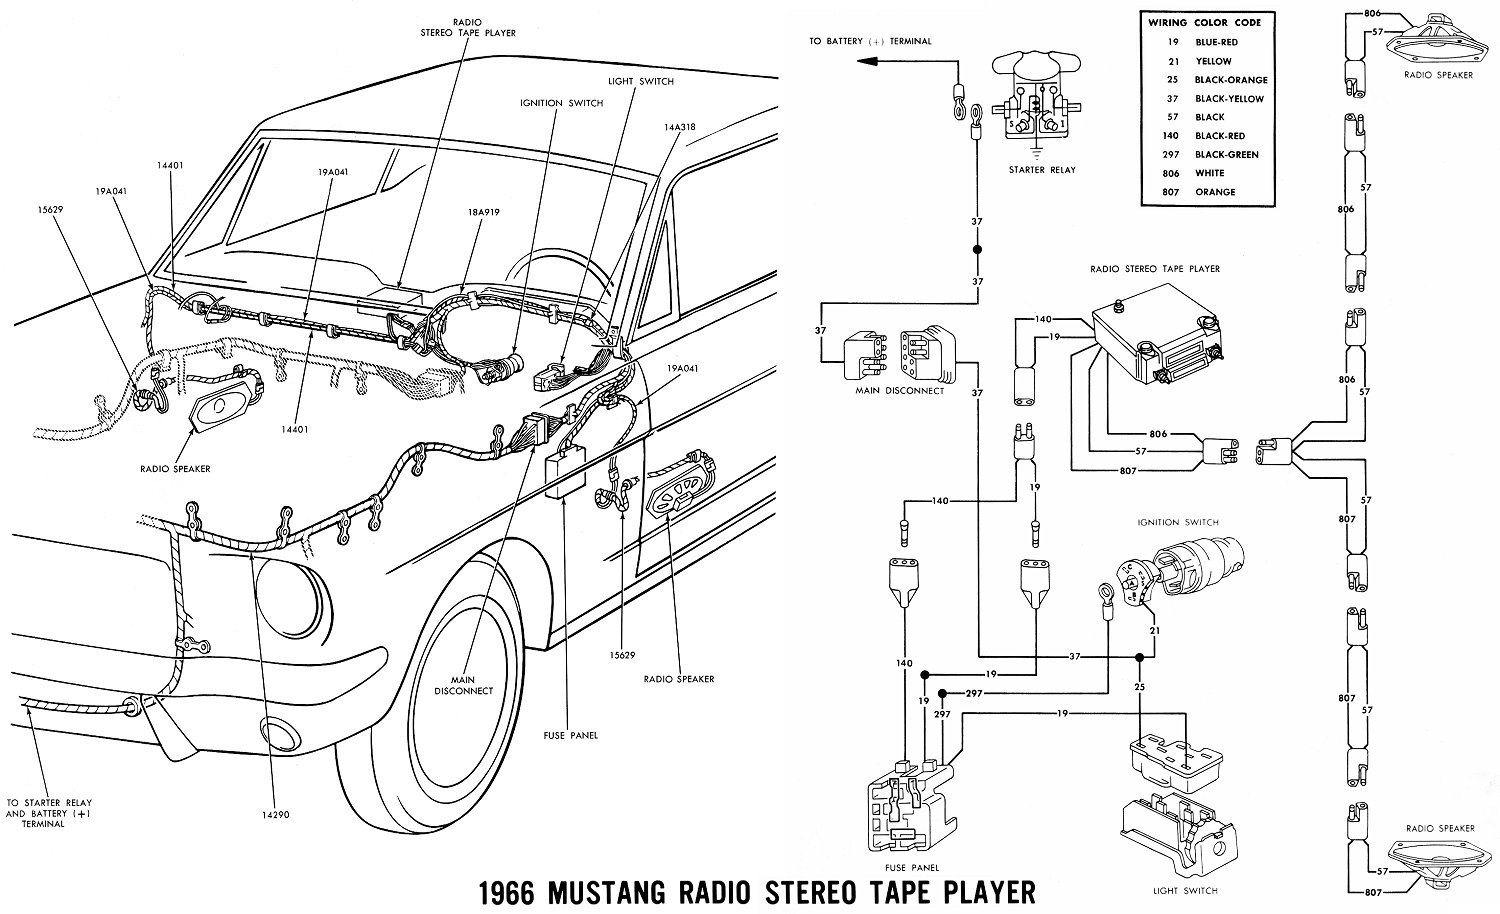 1966 ford mustang v8 wiring diagram 1966 mustang wiring diagrams - average joe restoration